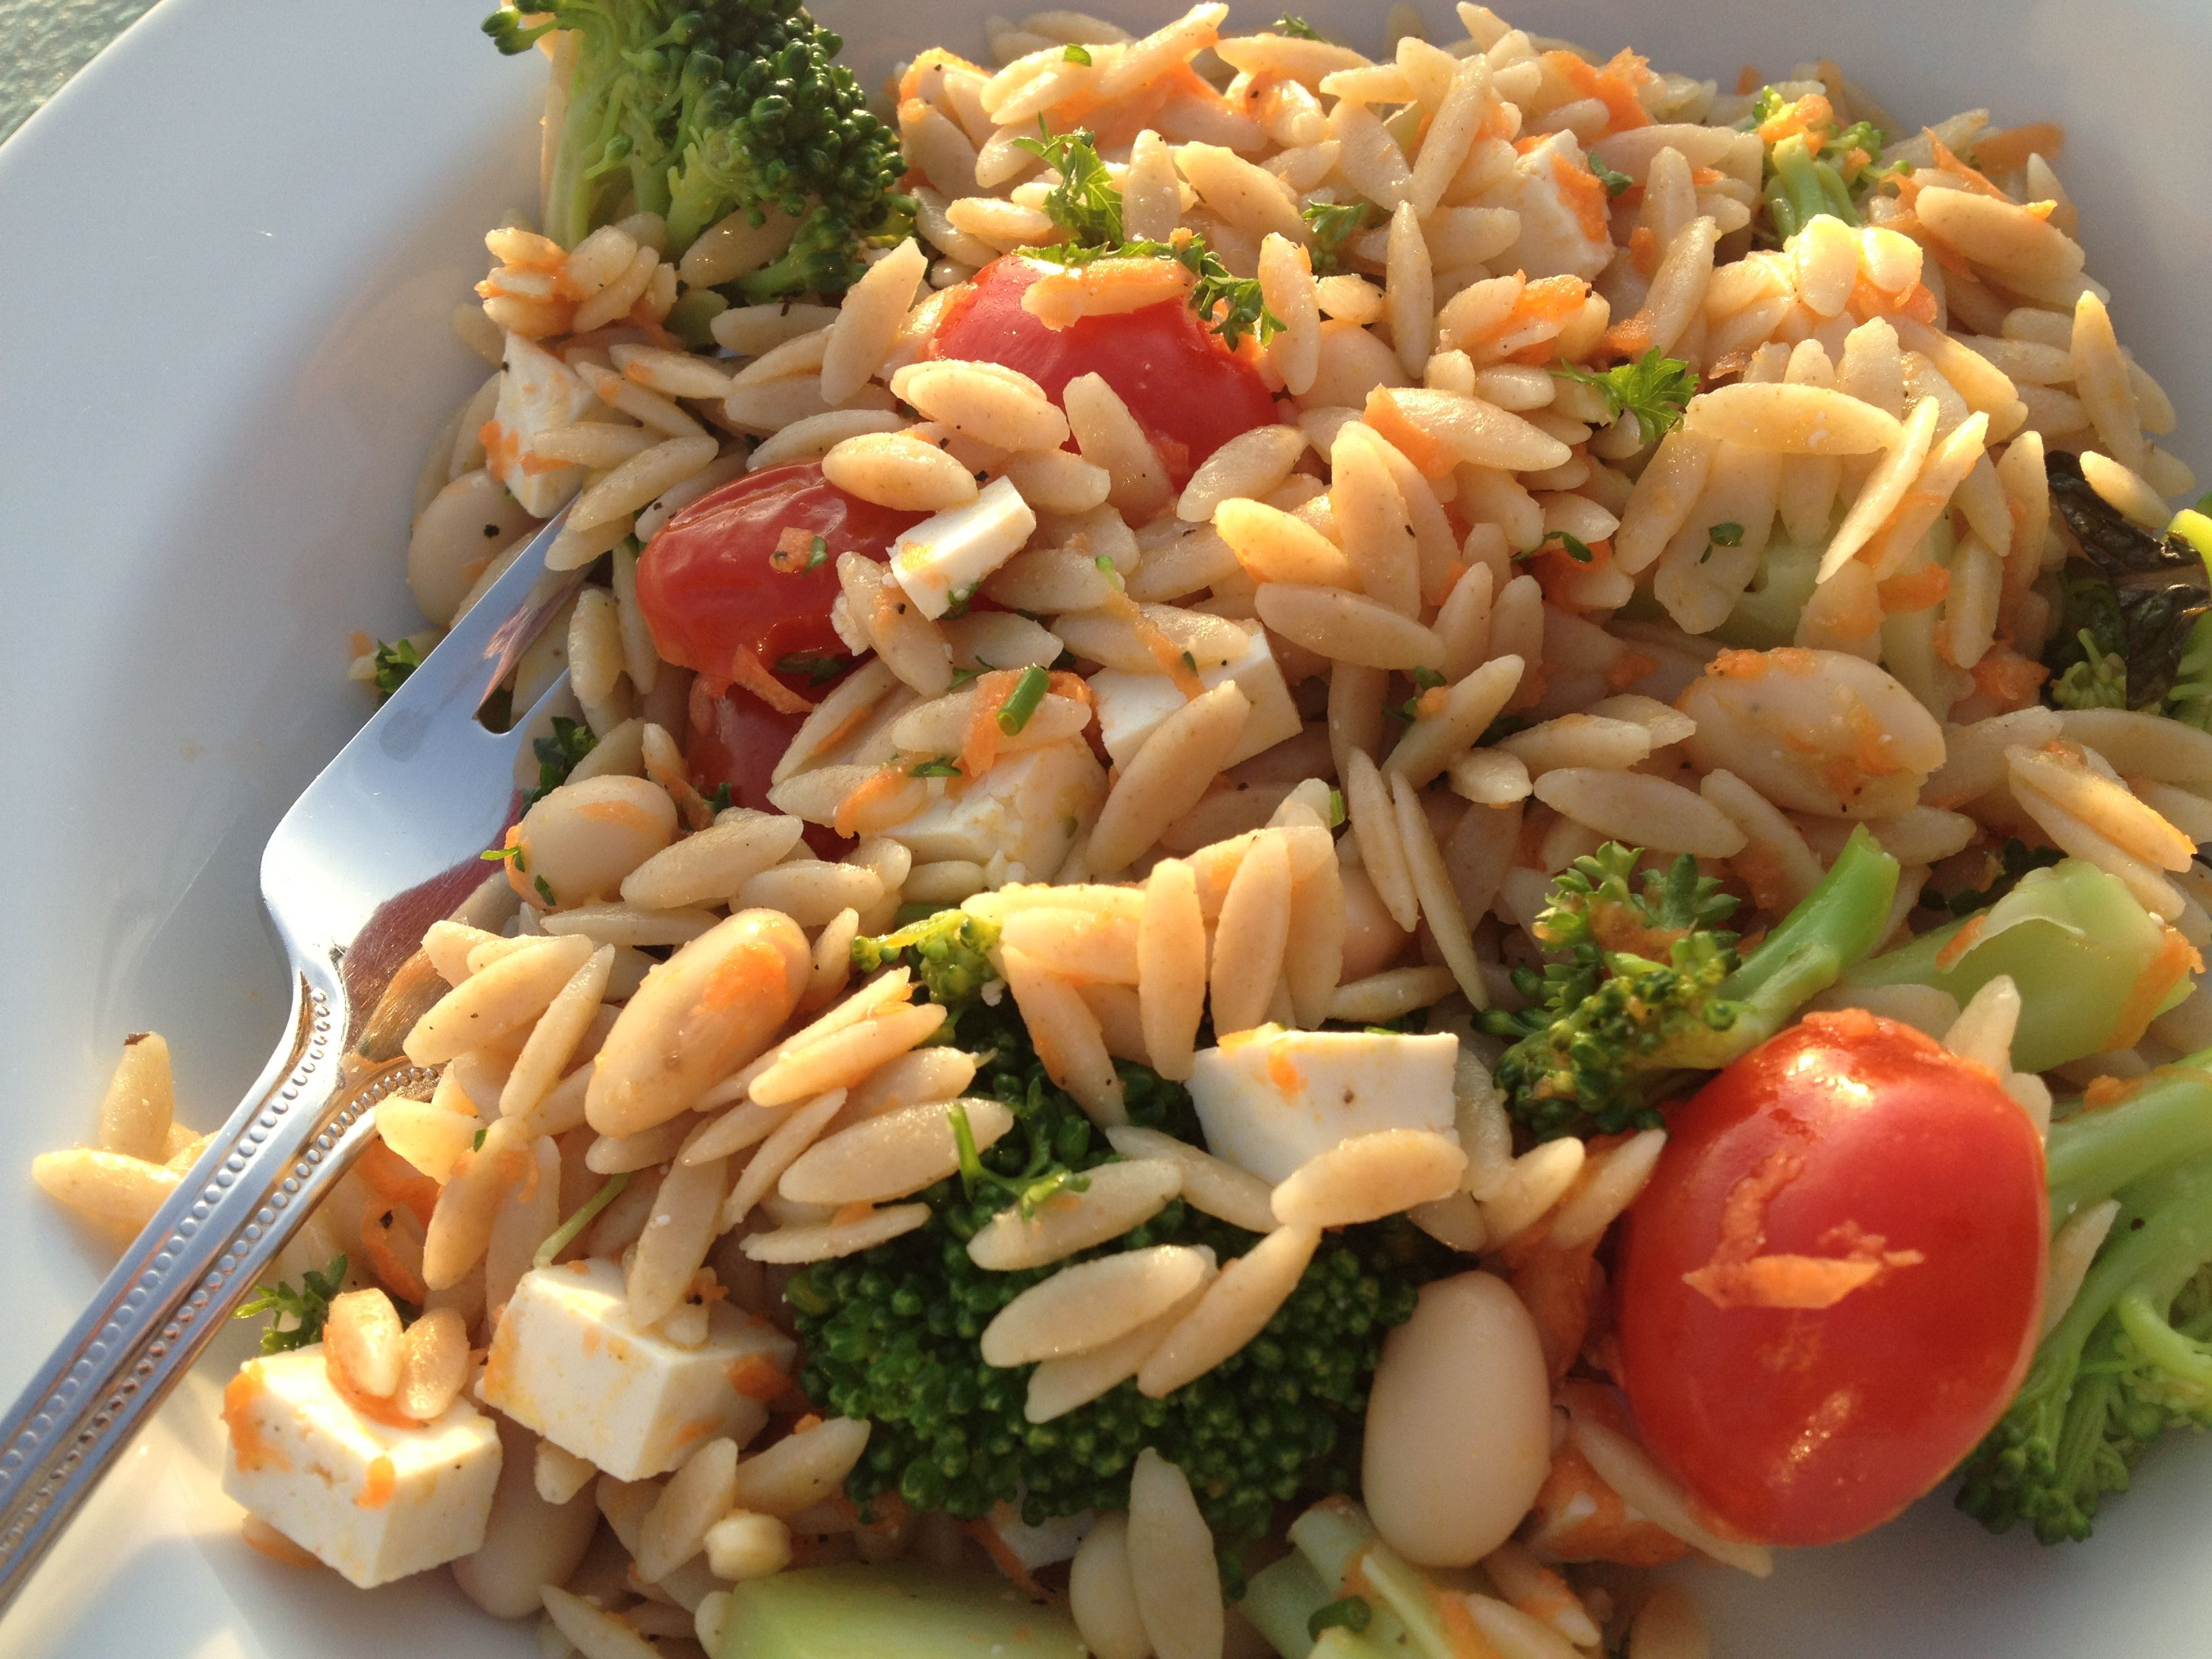 Mediterranean Inspired Orzo Salad #KidsCookMonday #MeatlessMonday